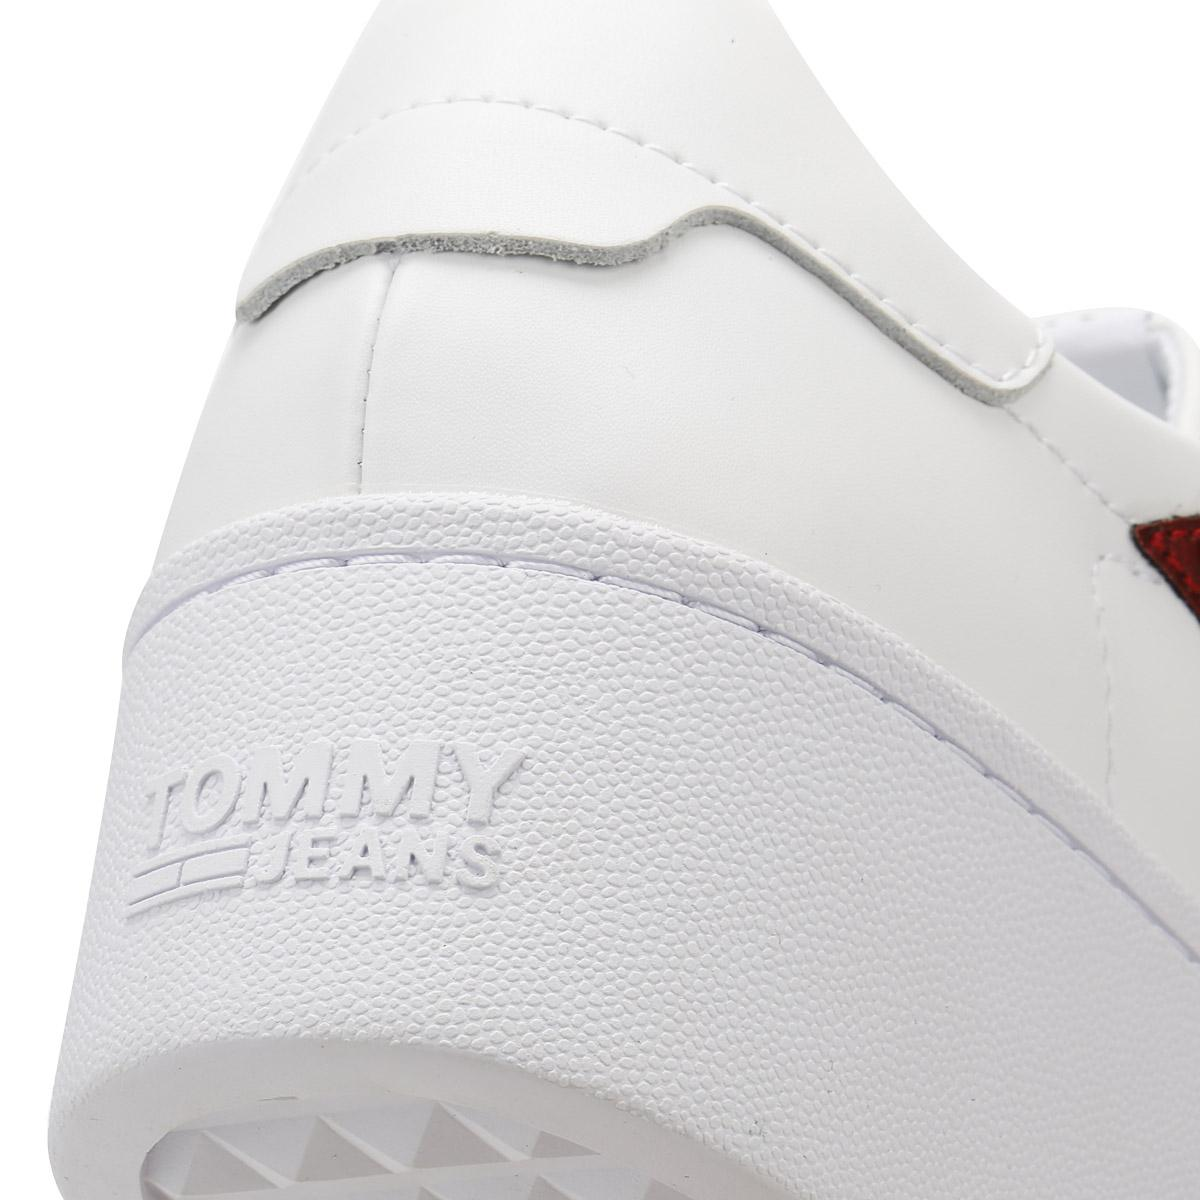 Lyst - Tommy Hilfiger Jeans Womens White Icon Sparkle Trainers in White 5292308b1